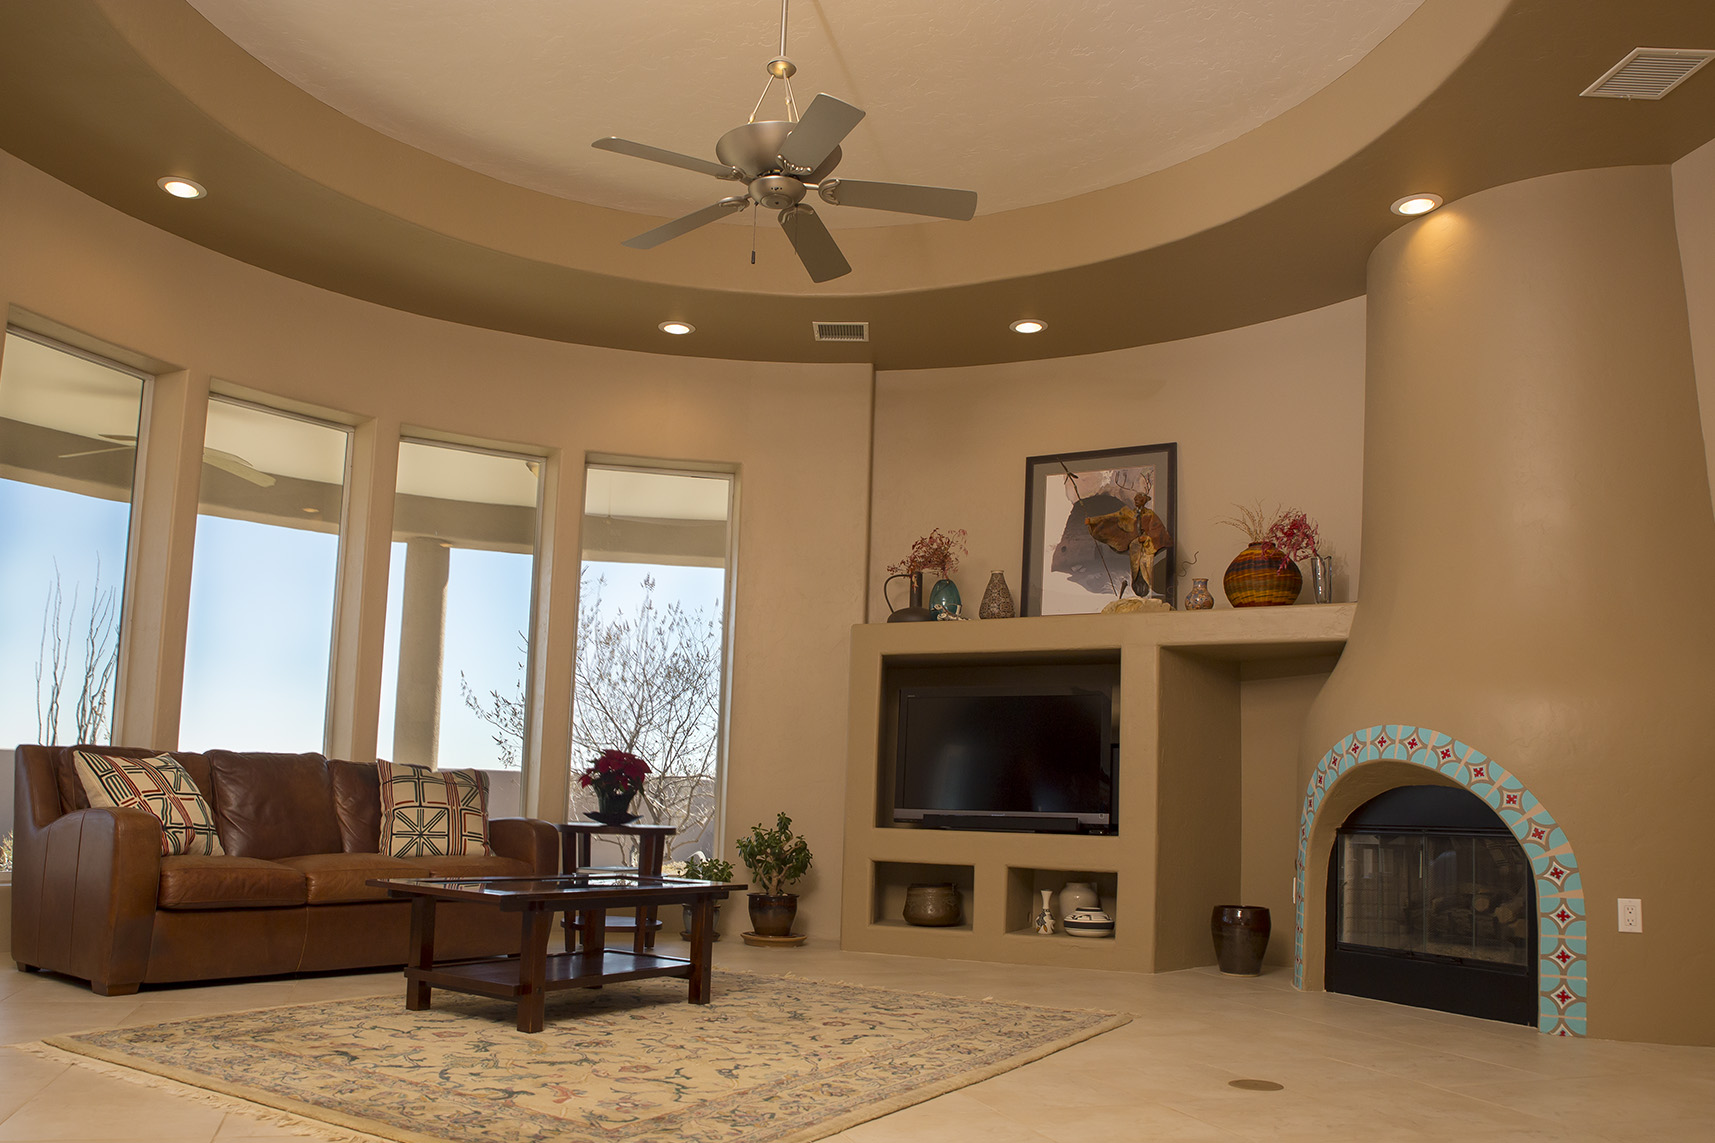 Multiple exposure, wide angle lens, great lighting, real estate, living room, fireplace, Las Cruces, NM